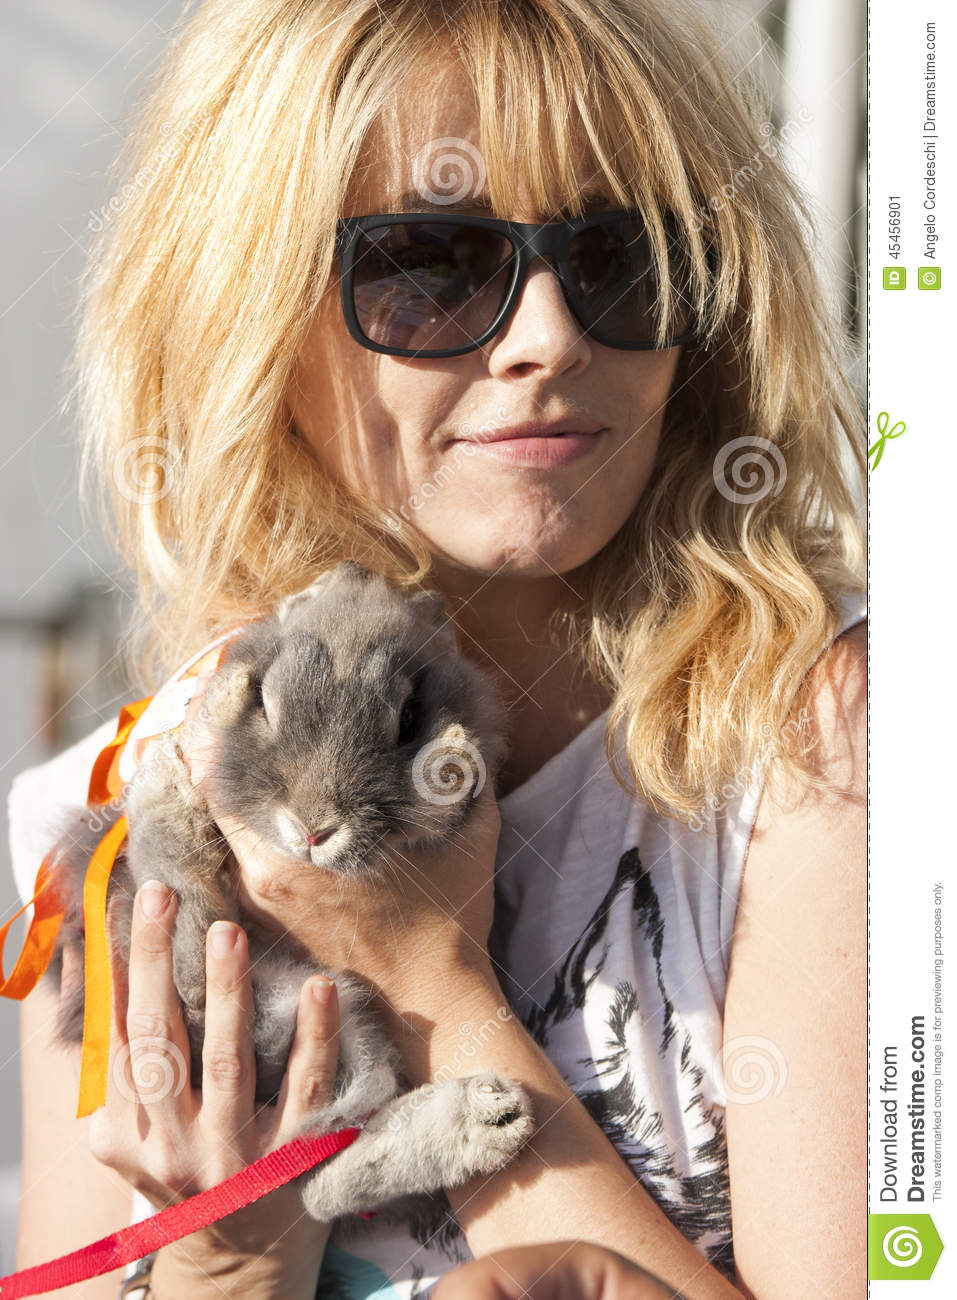 Blond Hair Woman With Sunglasses Holding Cute Pet Bunny